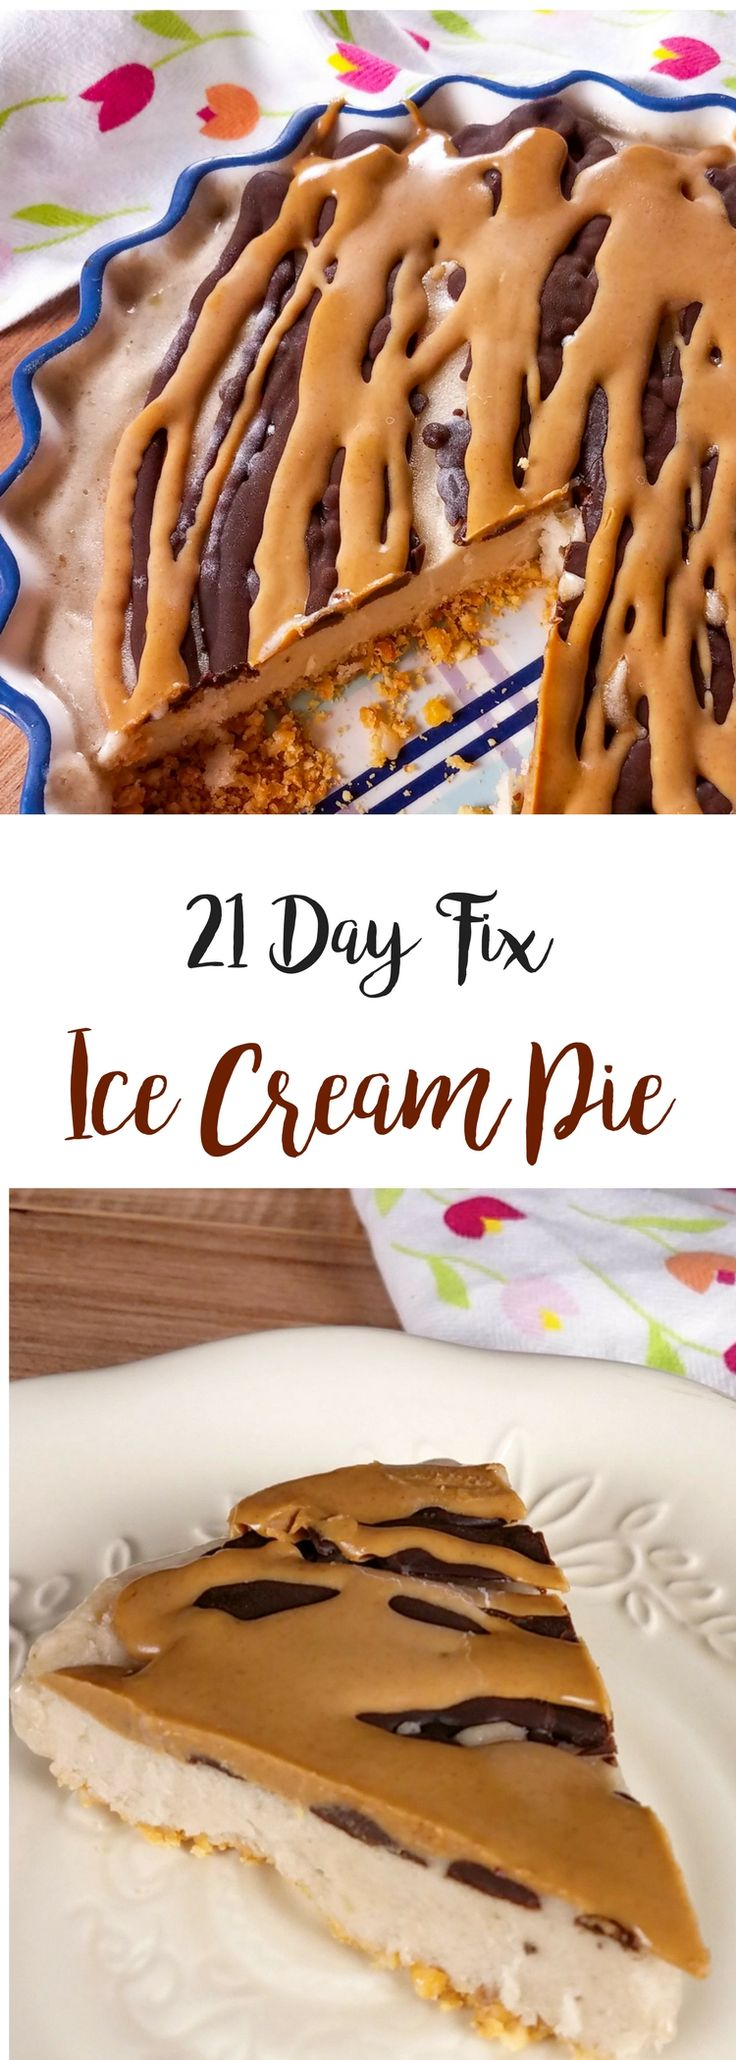 21 Day Fix Ice Cream Pie - Confessions of a Fit Foodie